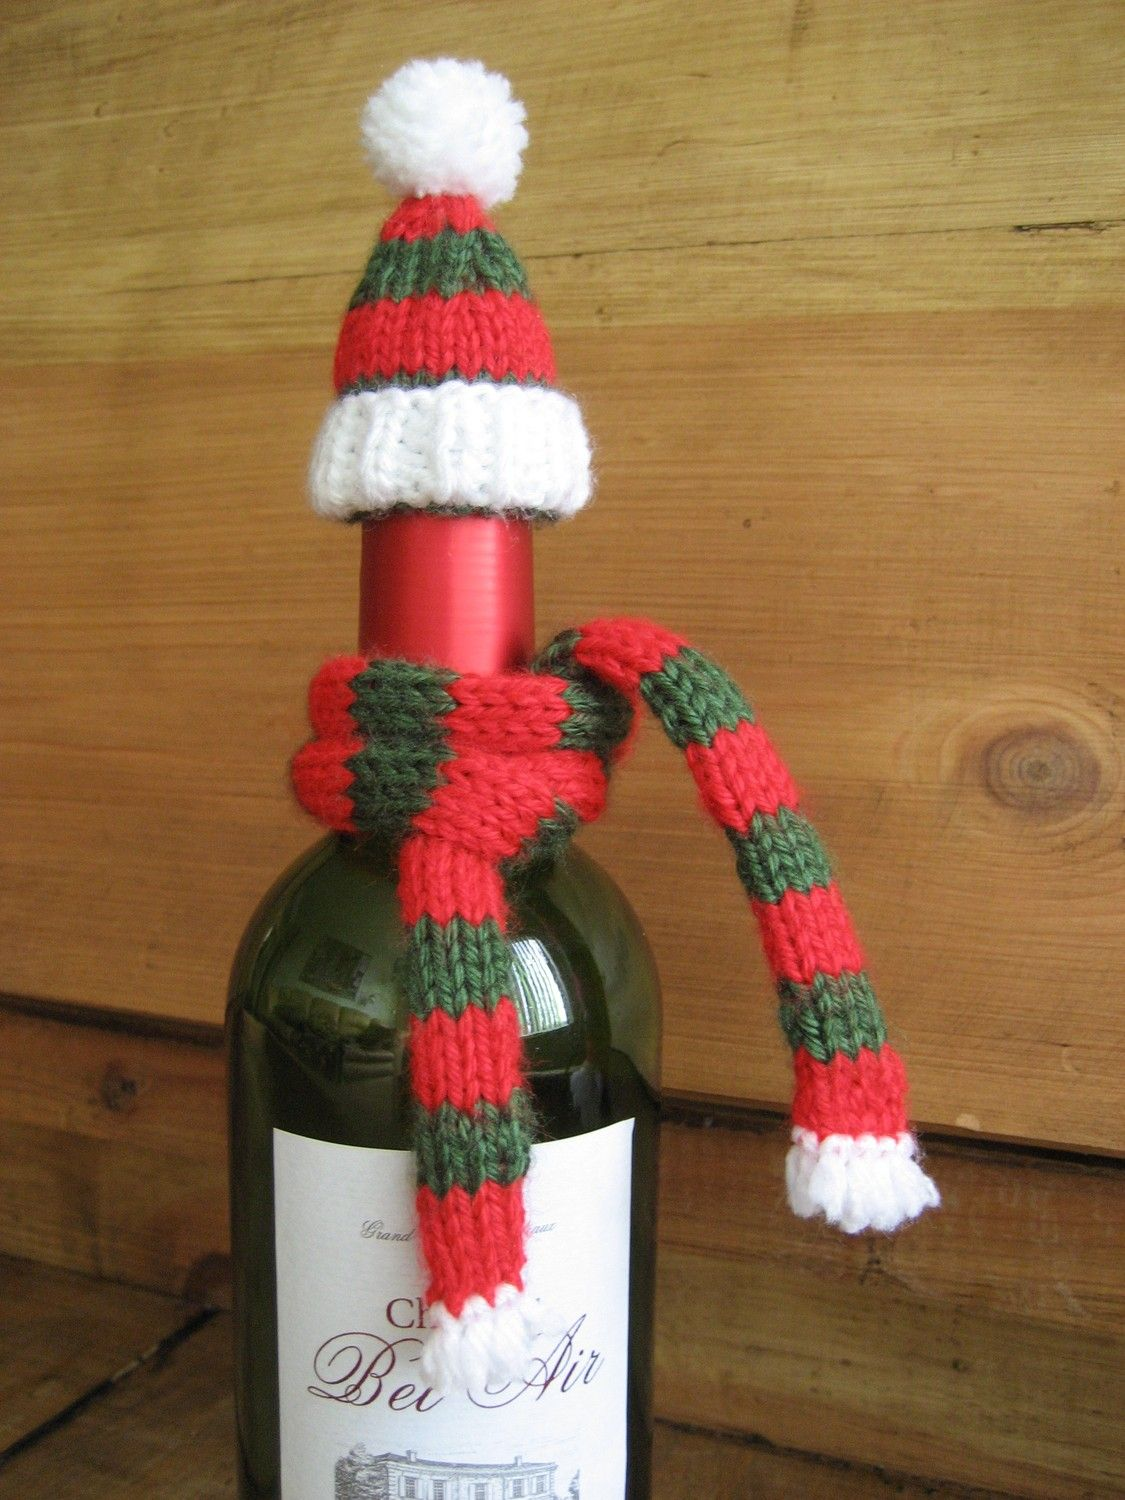 Red And Green Striped Wine Bottle Topper With Scarf Wine Bottle Topper Crafts Bottle Toppers